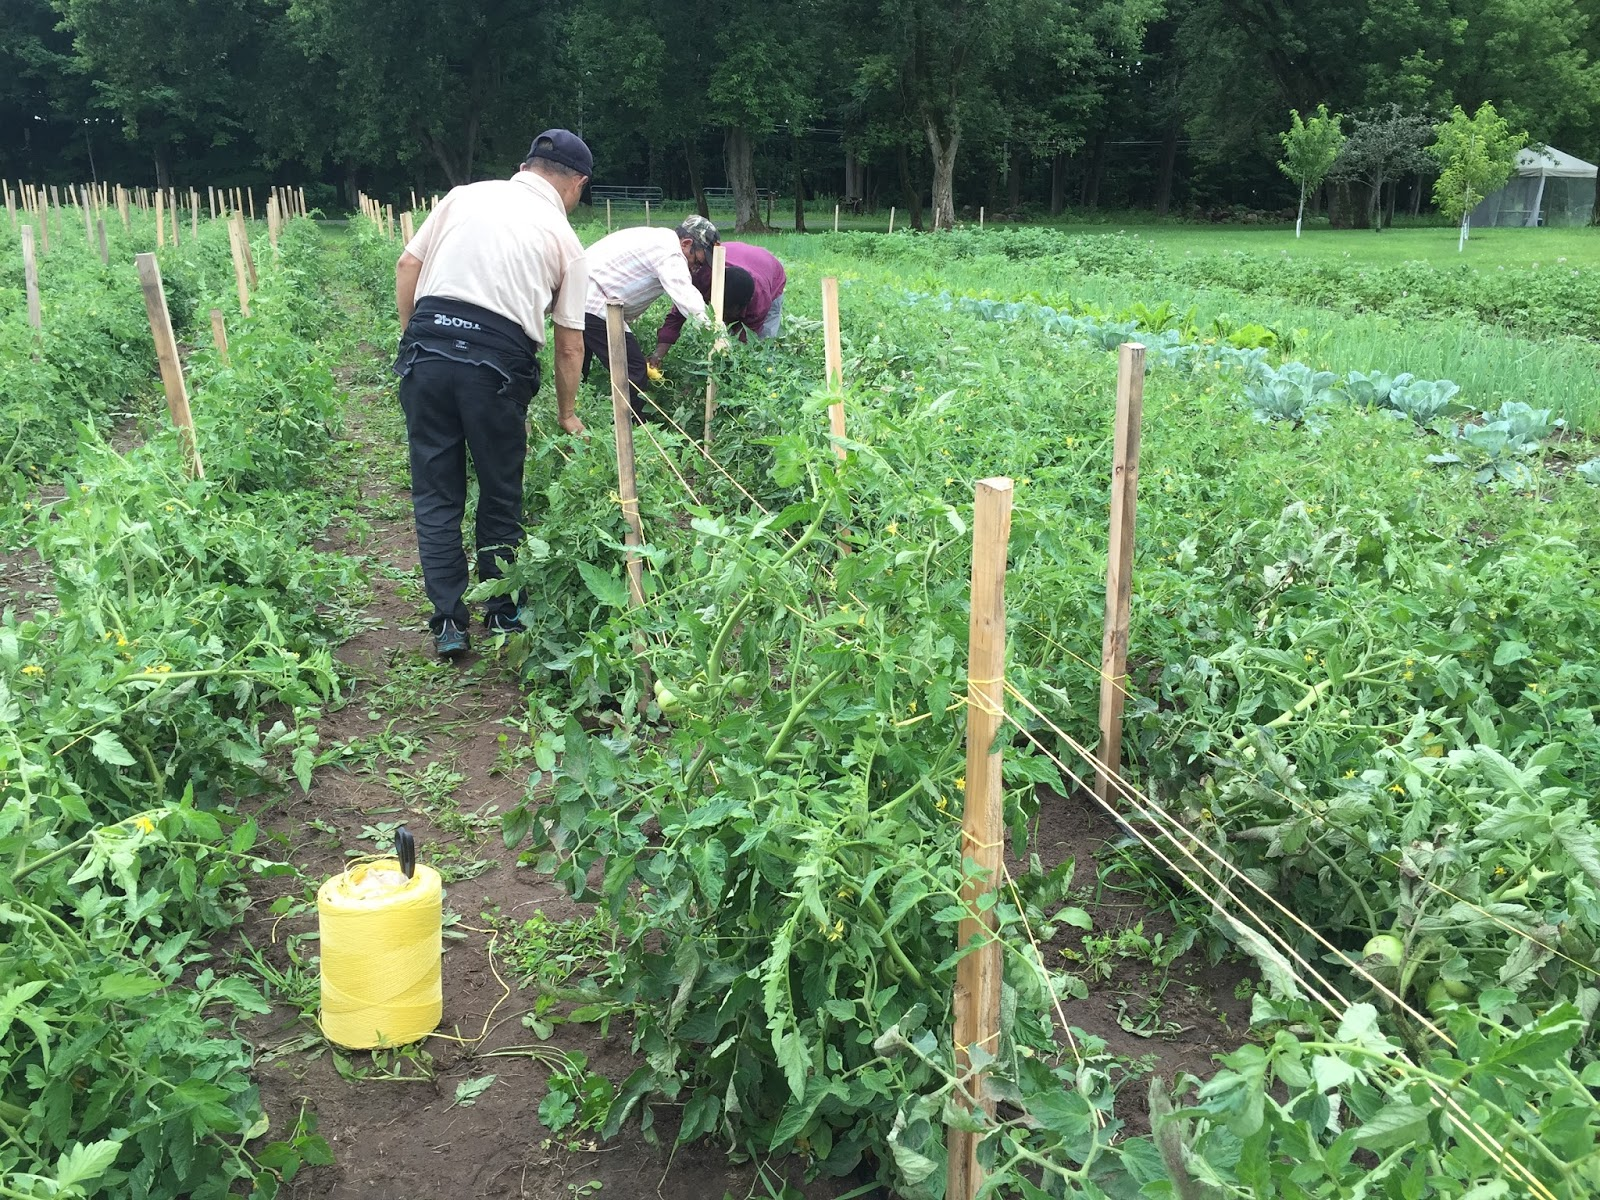 next week we re looking forward to more weeding trellising and harvesting plus a visit from a group of congolese farmers interested in learning more